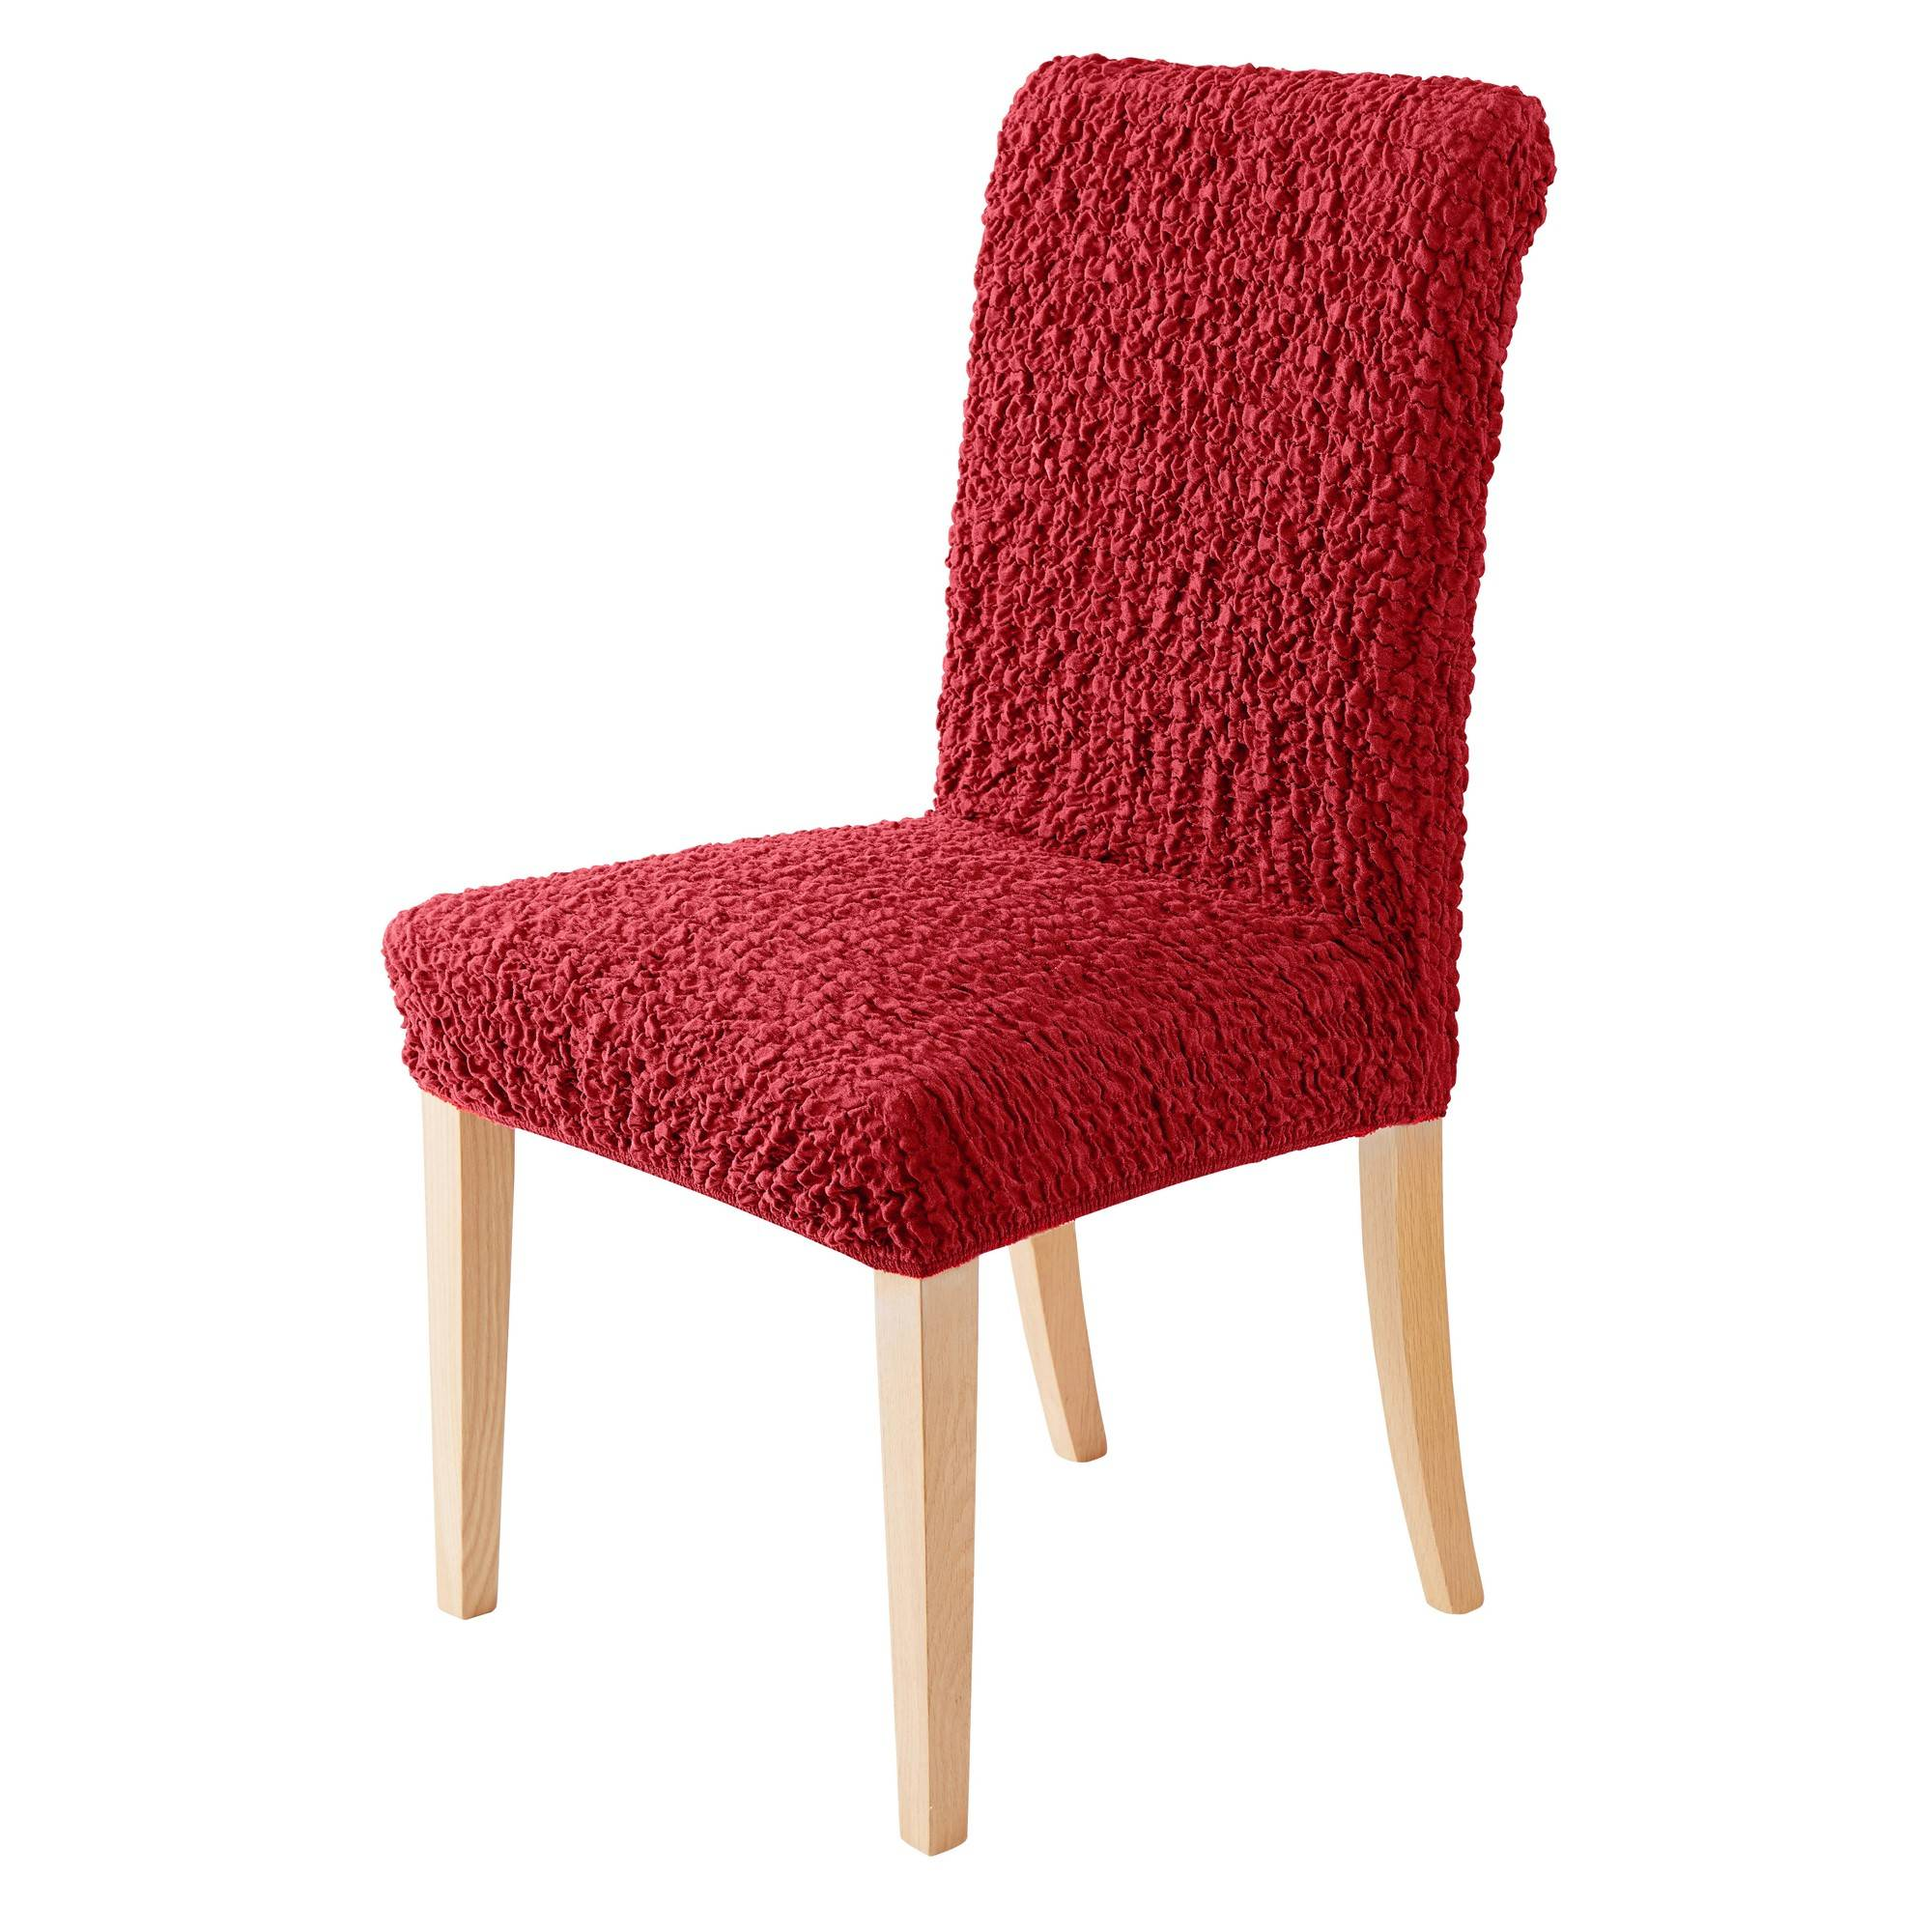 Housse chaise bi-extensible - rouge - Blancheporte